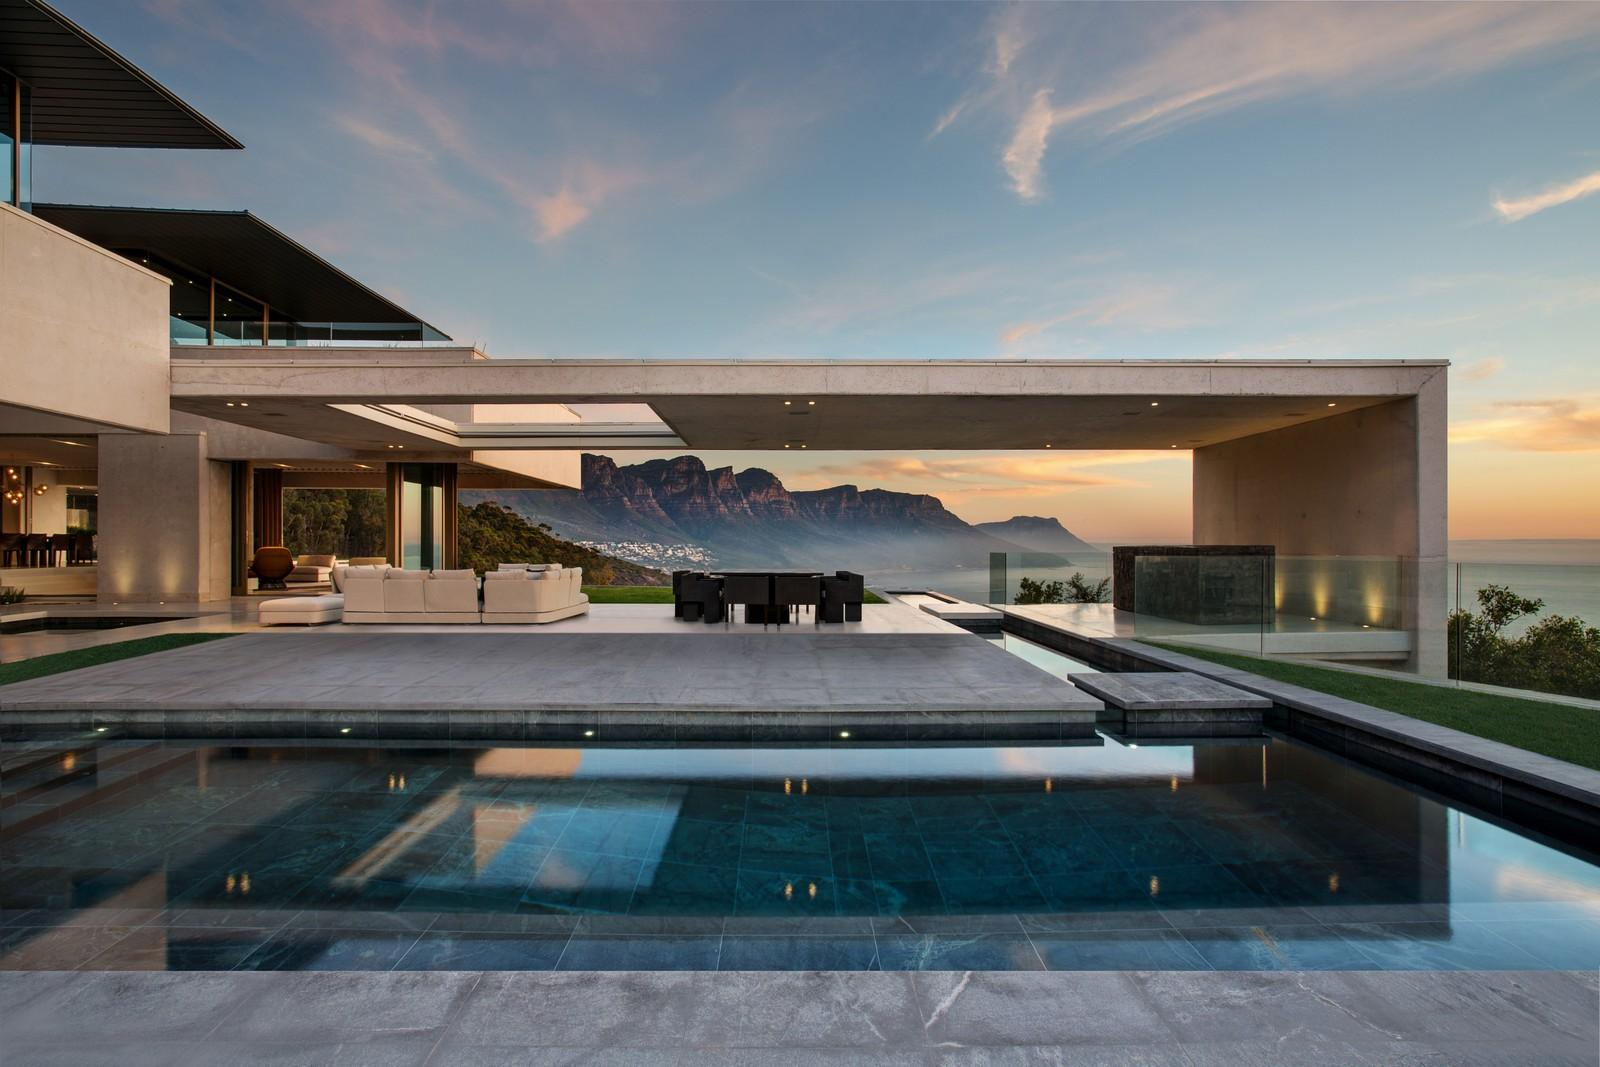 infinity-pool-design | Interior Design Ideas.